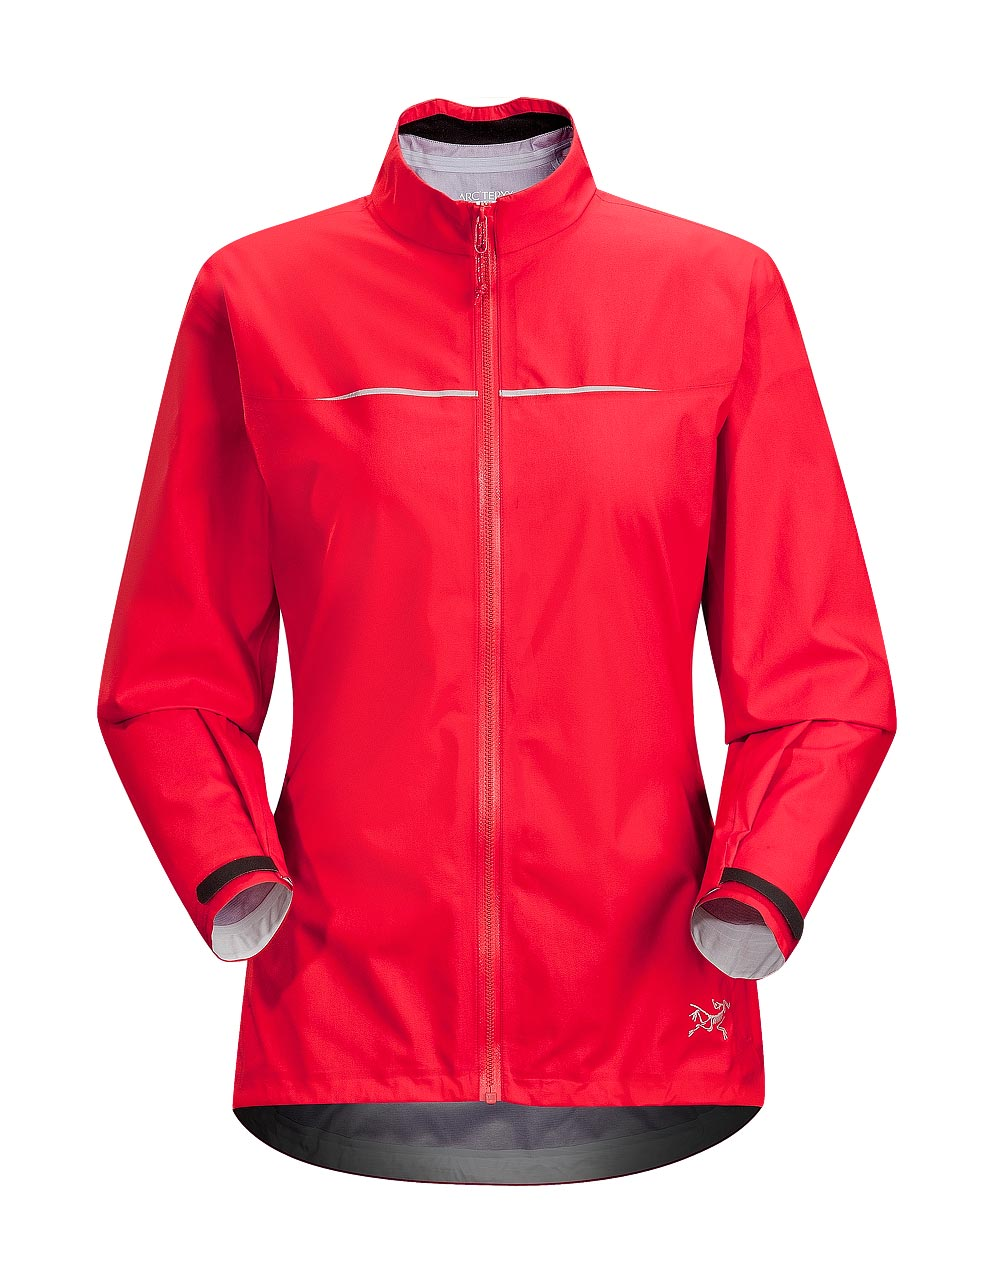 Arcteryx Jackets Women Grenadine Visio FL Jacket - New